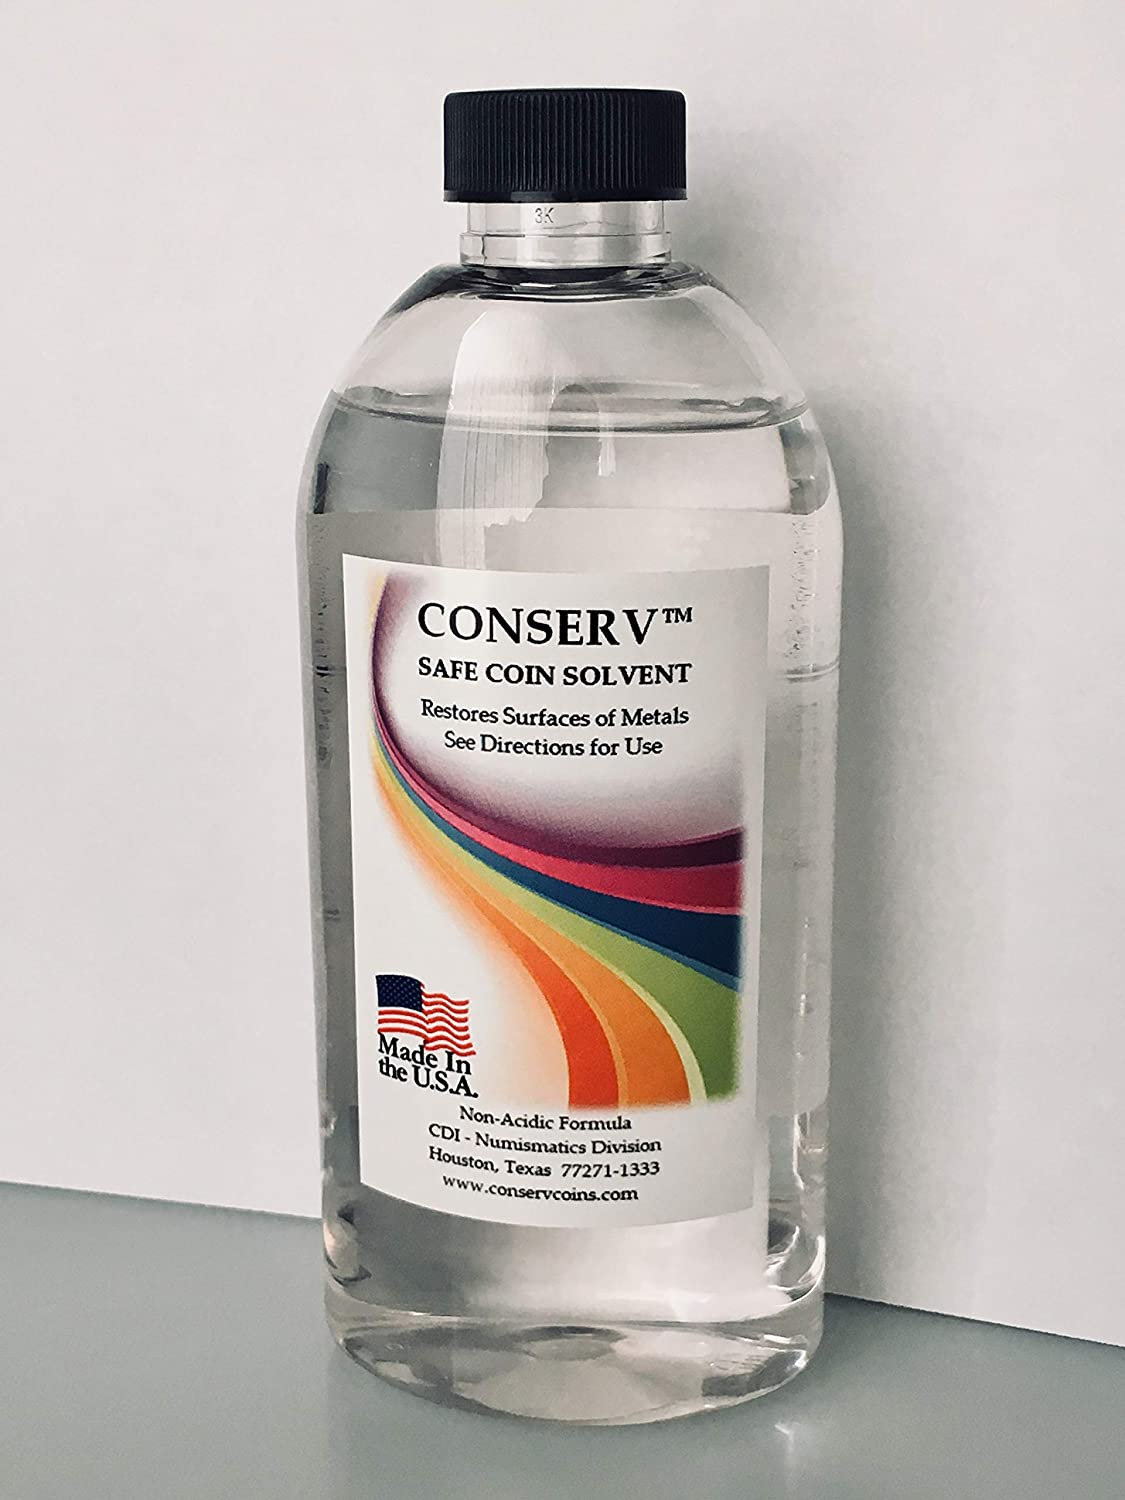 Conserv Safe Coin Solvent - 8 Ounce Bottle CDI 865890000215